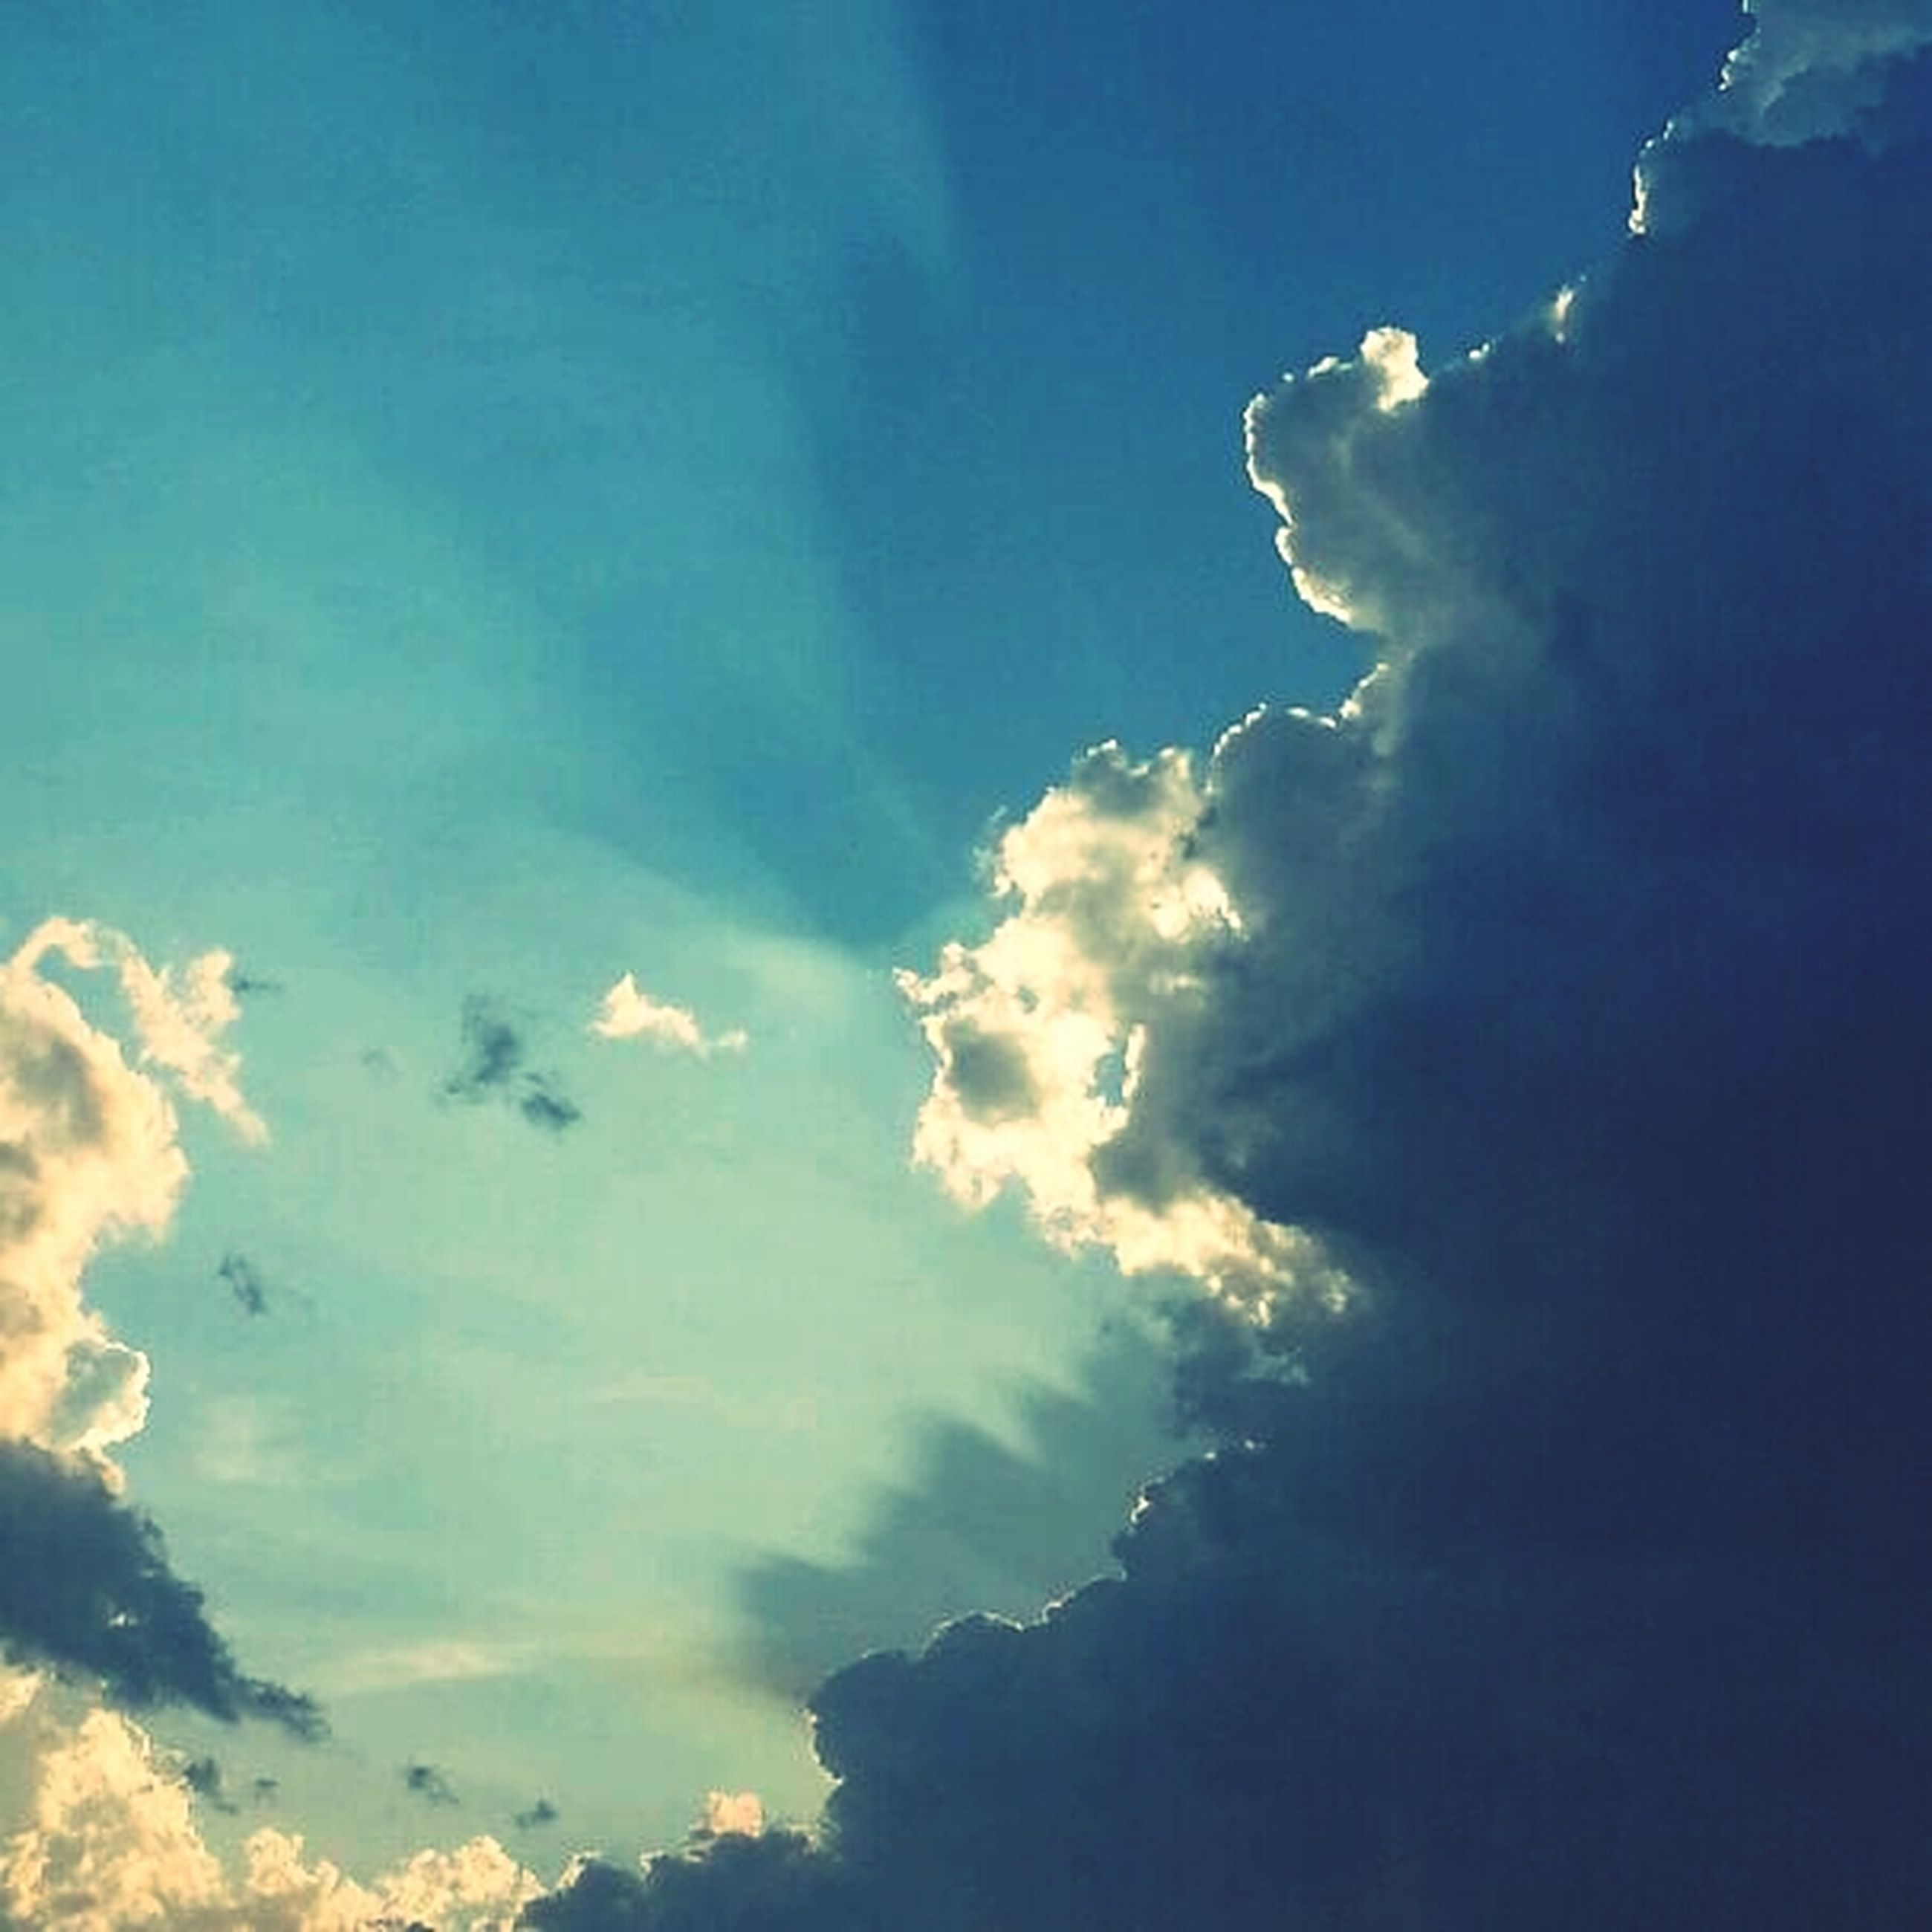 sky, blue, beauty in nature, scenics, tranquility, tranquil scene, cloud - sky, low angle view, nature, idyllic, cloud, outdoors, cloudscape, majestic, no people, sky only, cloudy, day, sunlight, weather